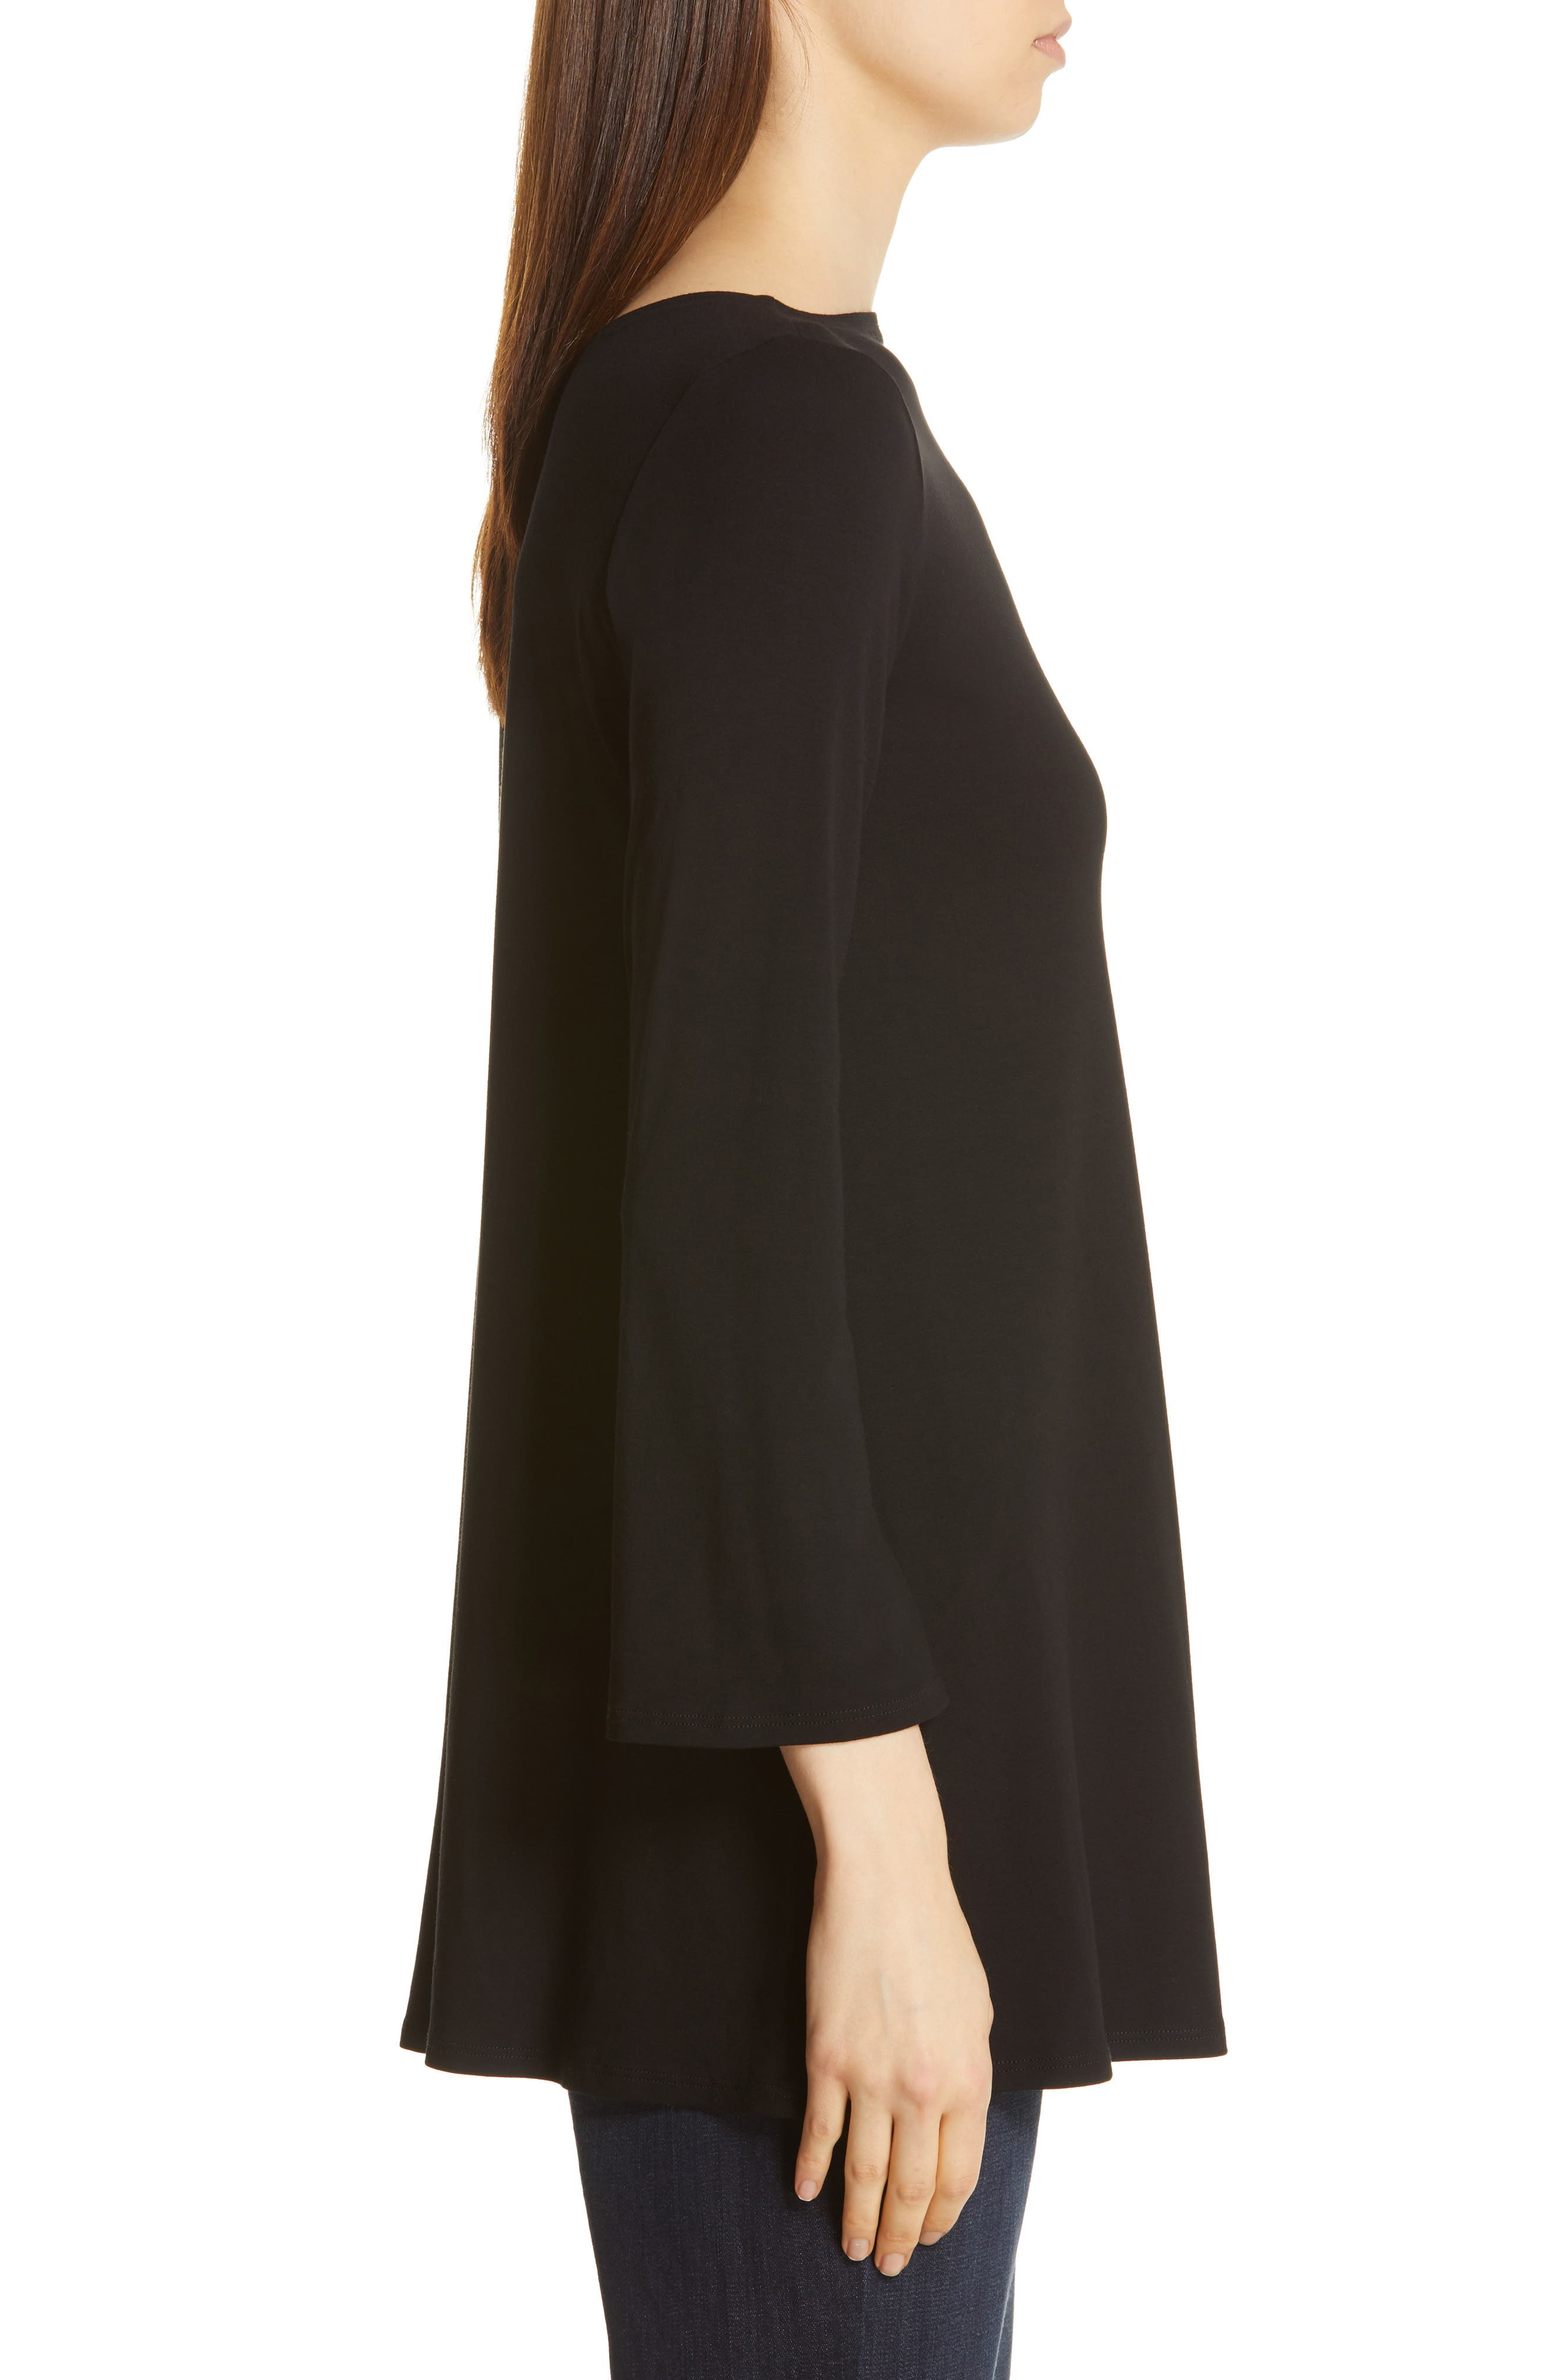 EILEEN FISHER, Jewel Neck Tunic Top, Alternate thumbnail 3, color, 001